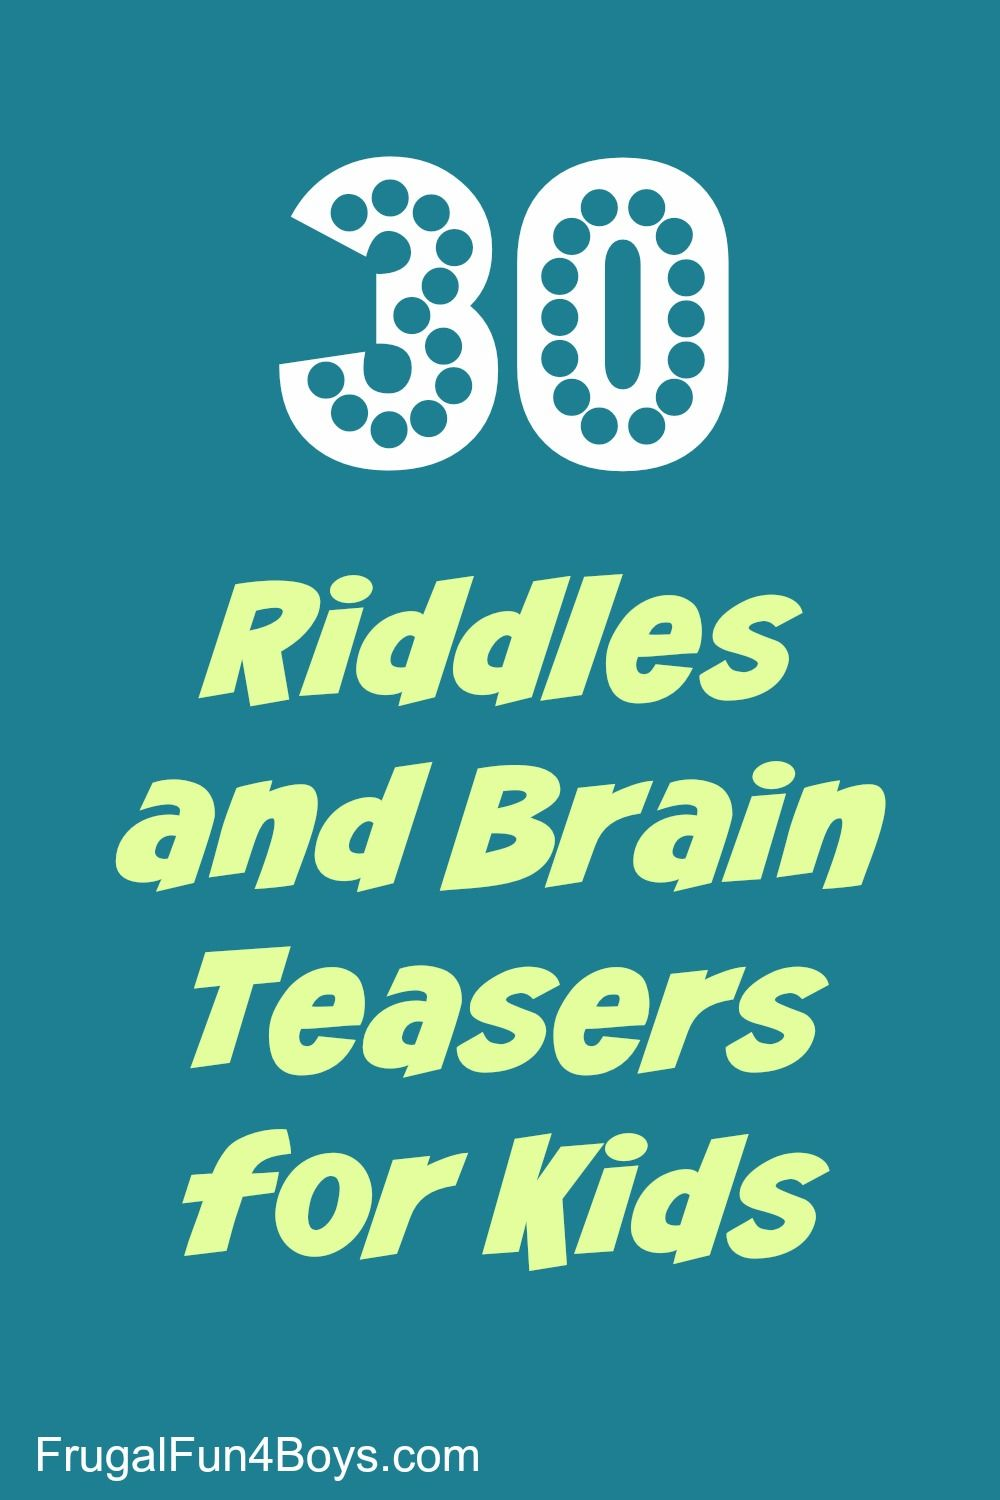 50 Riddles and Brain Teasers for Kids Free Printable